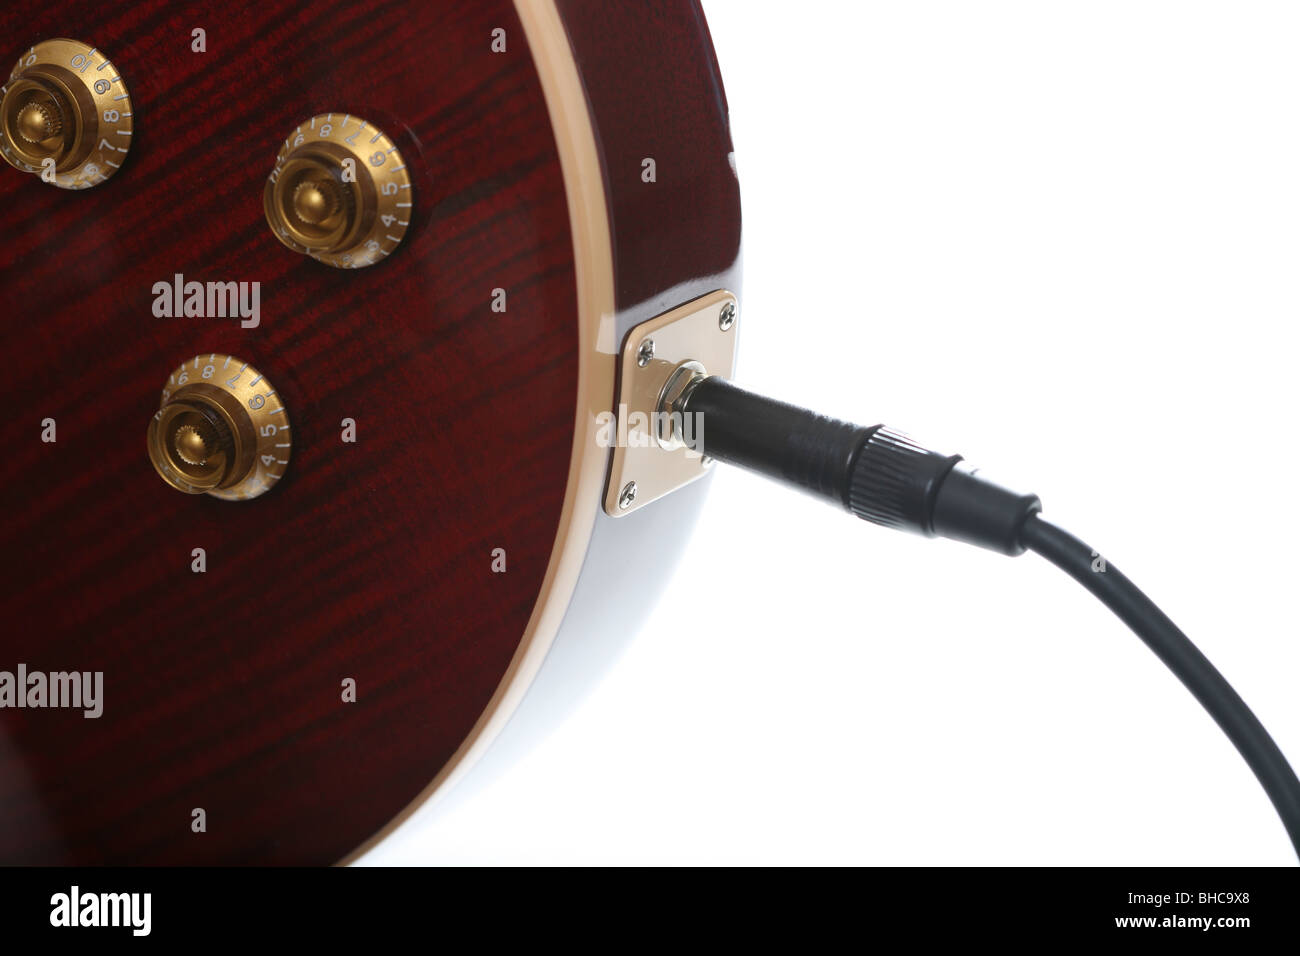 Gibson Les Paul Stock Photos Images Alamy 4 Conductor With Wiring Diagram 1 Jackplug Plugged Into A Jack Socket Of Guitar